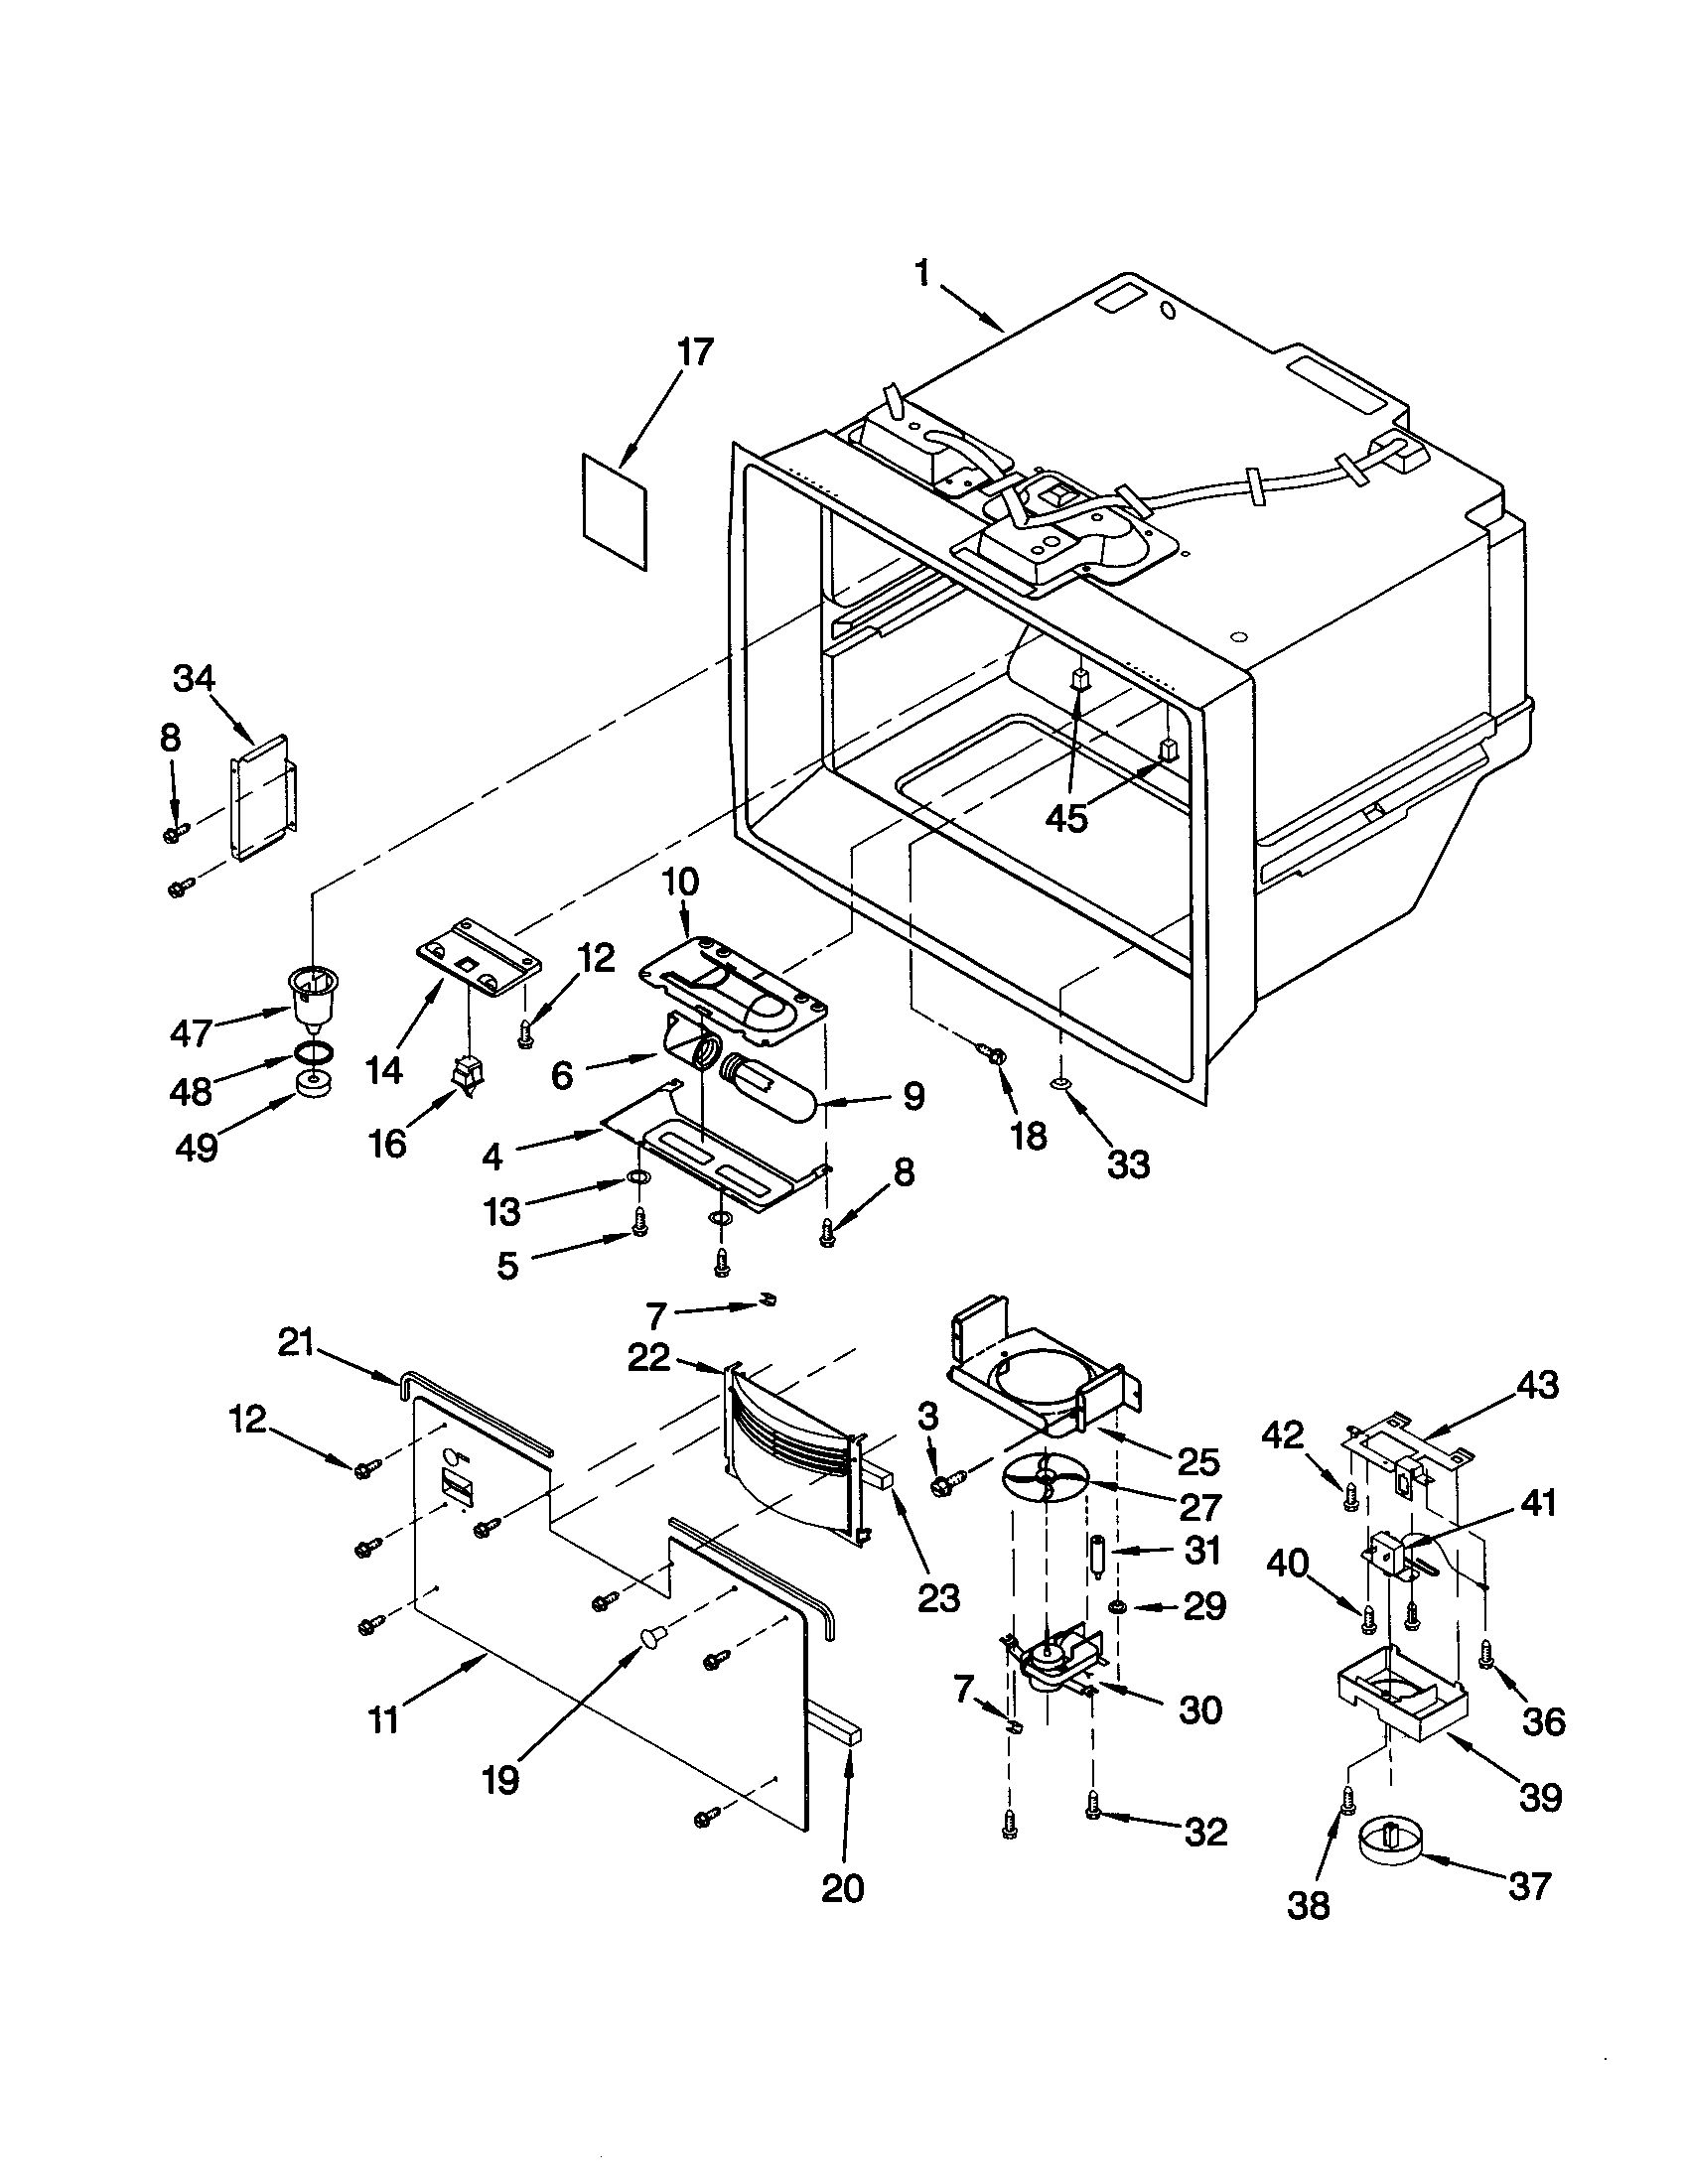 KitchenAid KBRS22KGWH1 freezer liner diagram